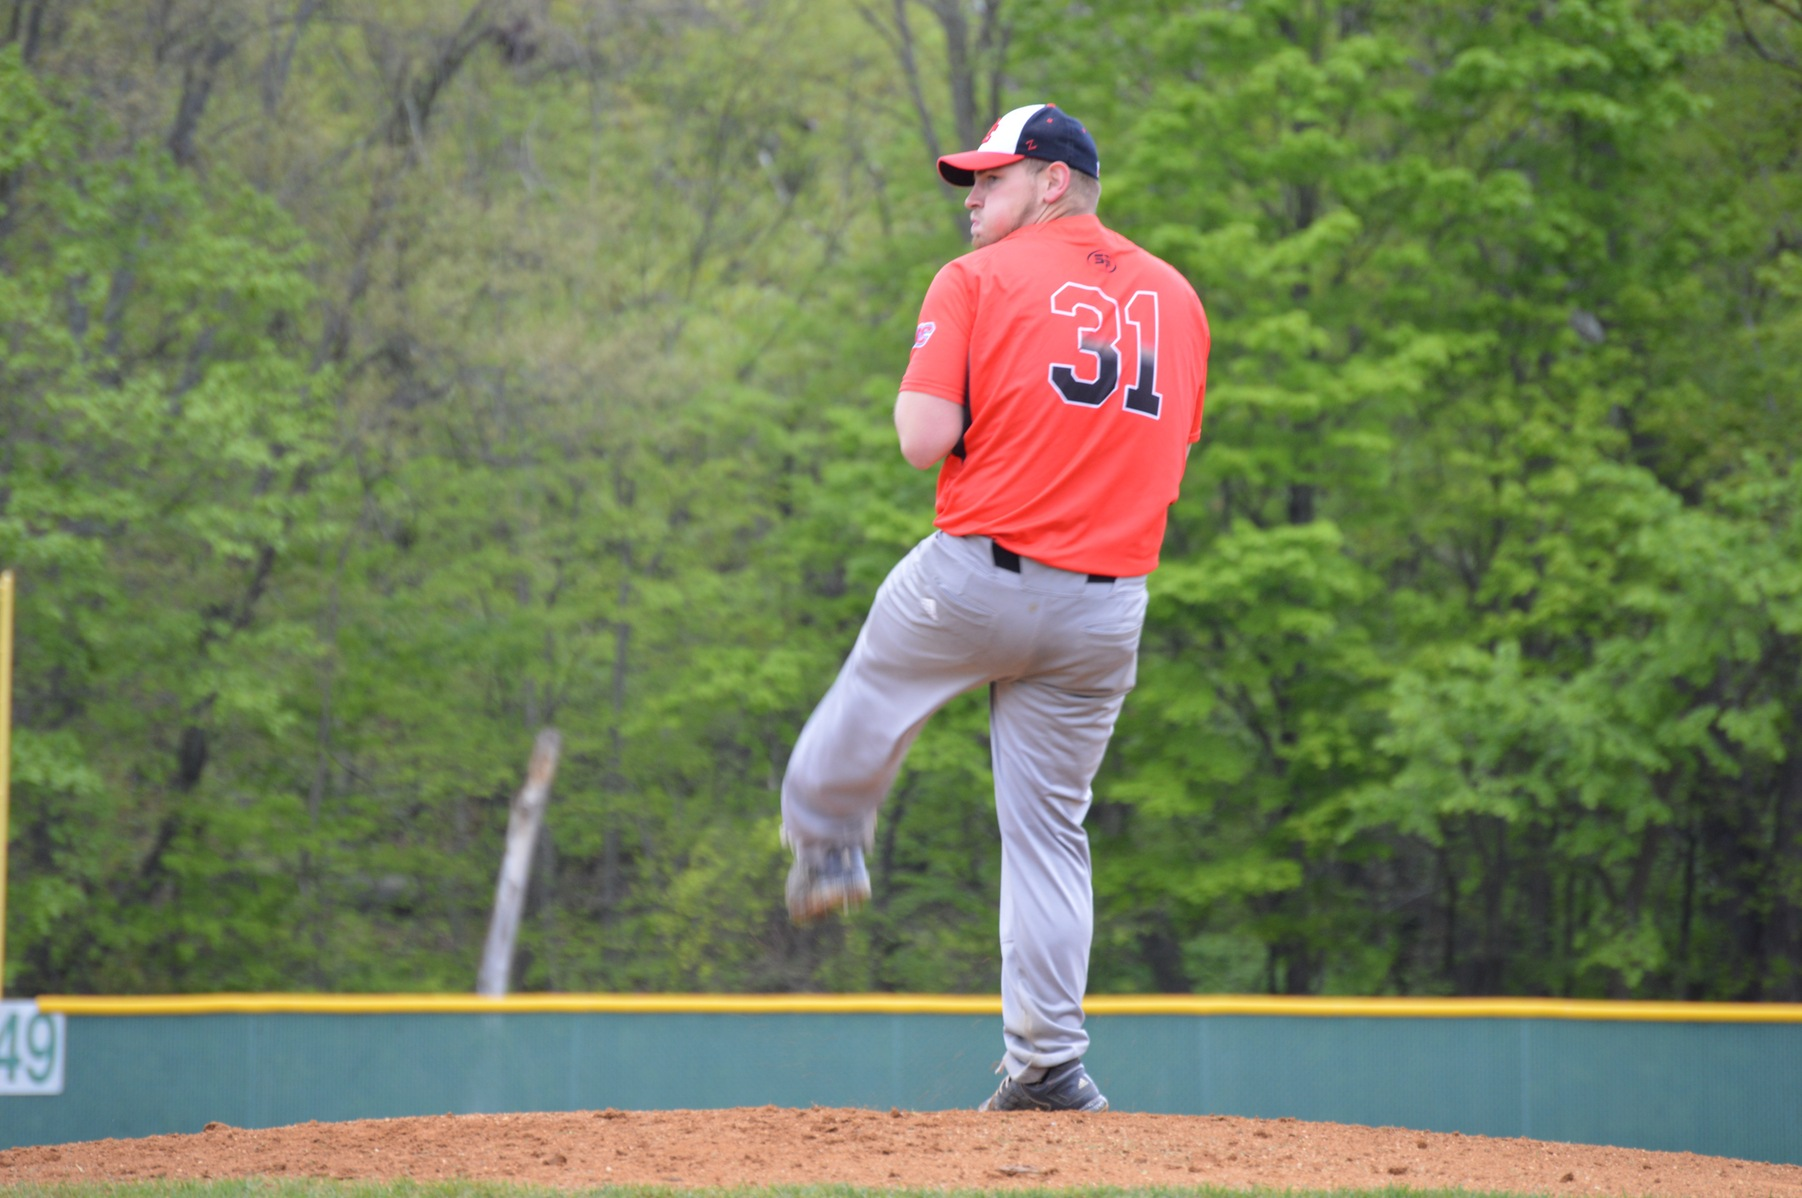 OILERS RALLY TO UPEND BASEBALL